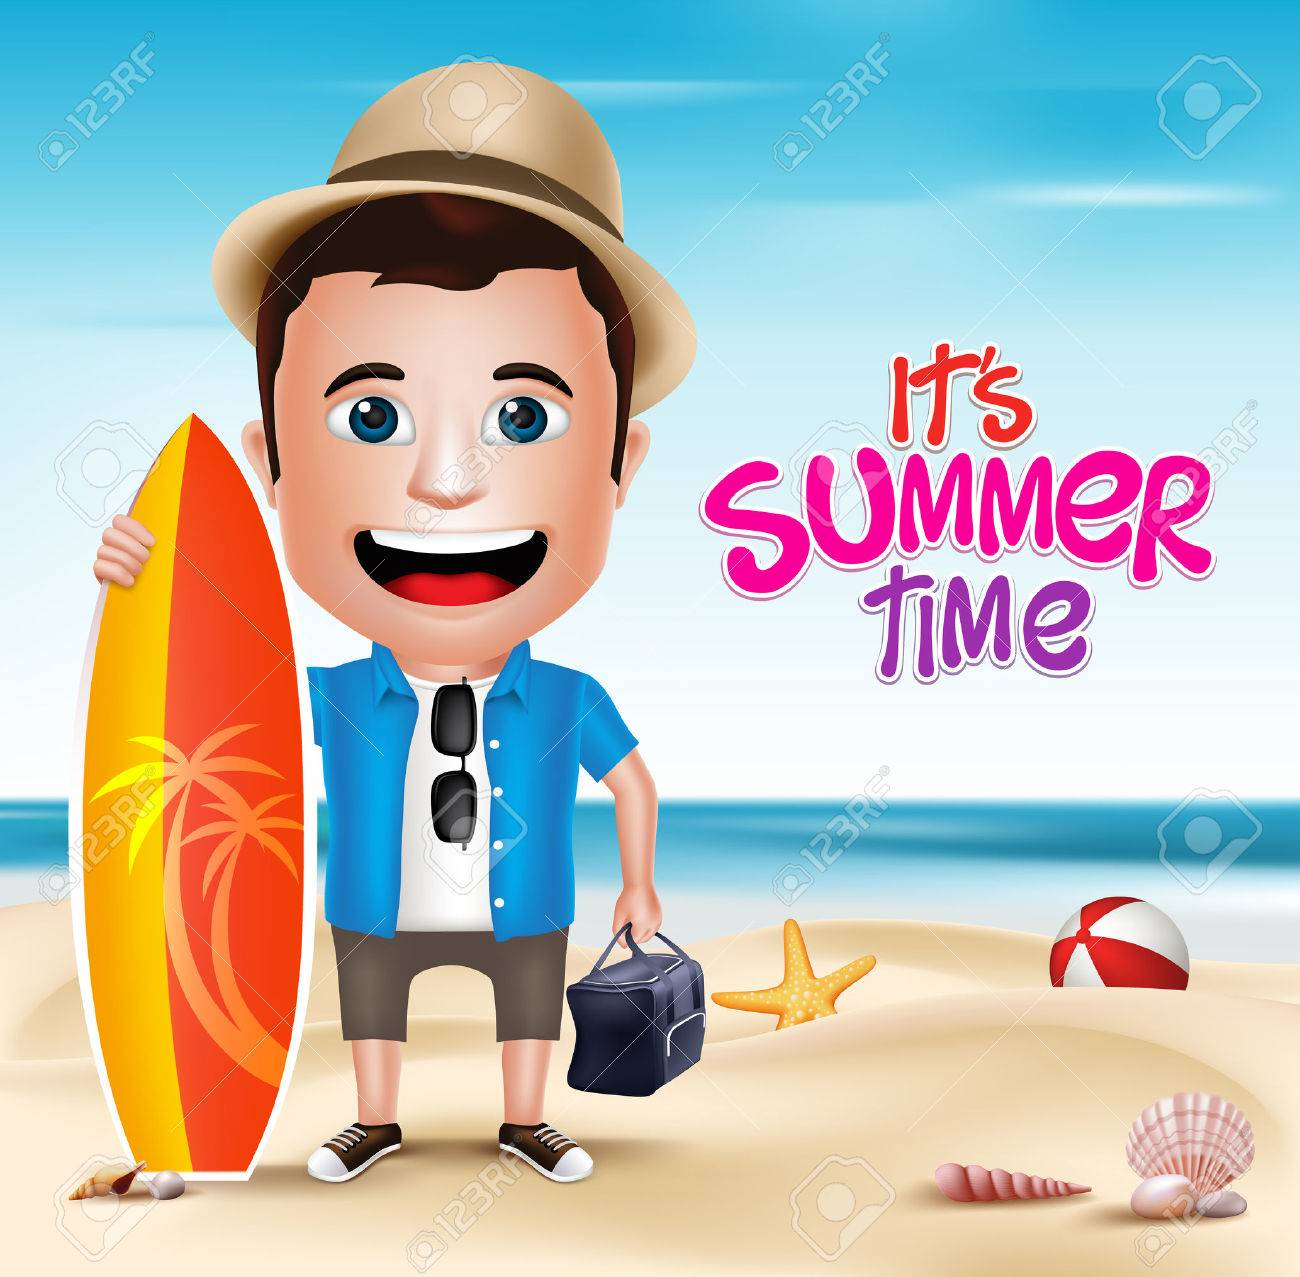 3D Realistic Man Character Wearing Summer Outfit Holding Surfing Board in Beach Background. Vector Illustration - 44857336